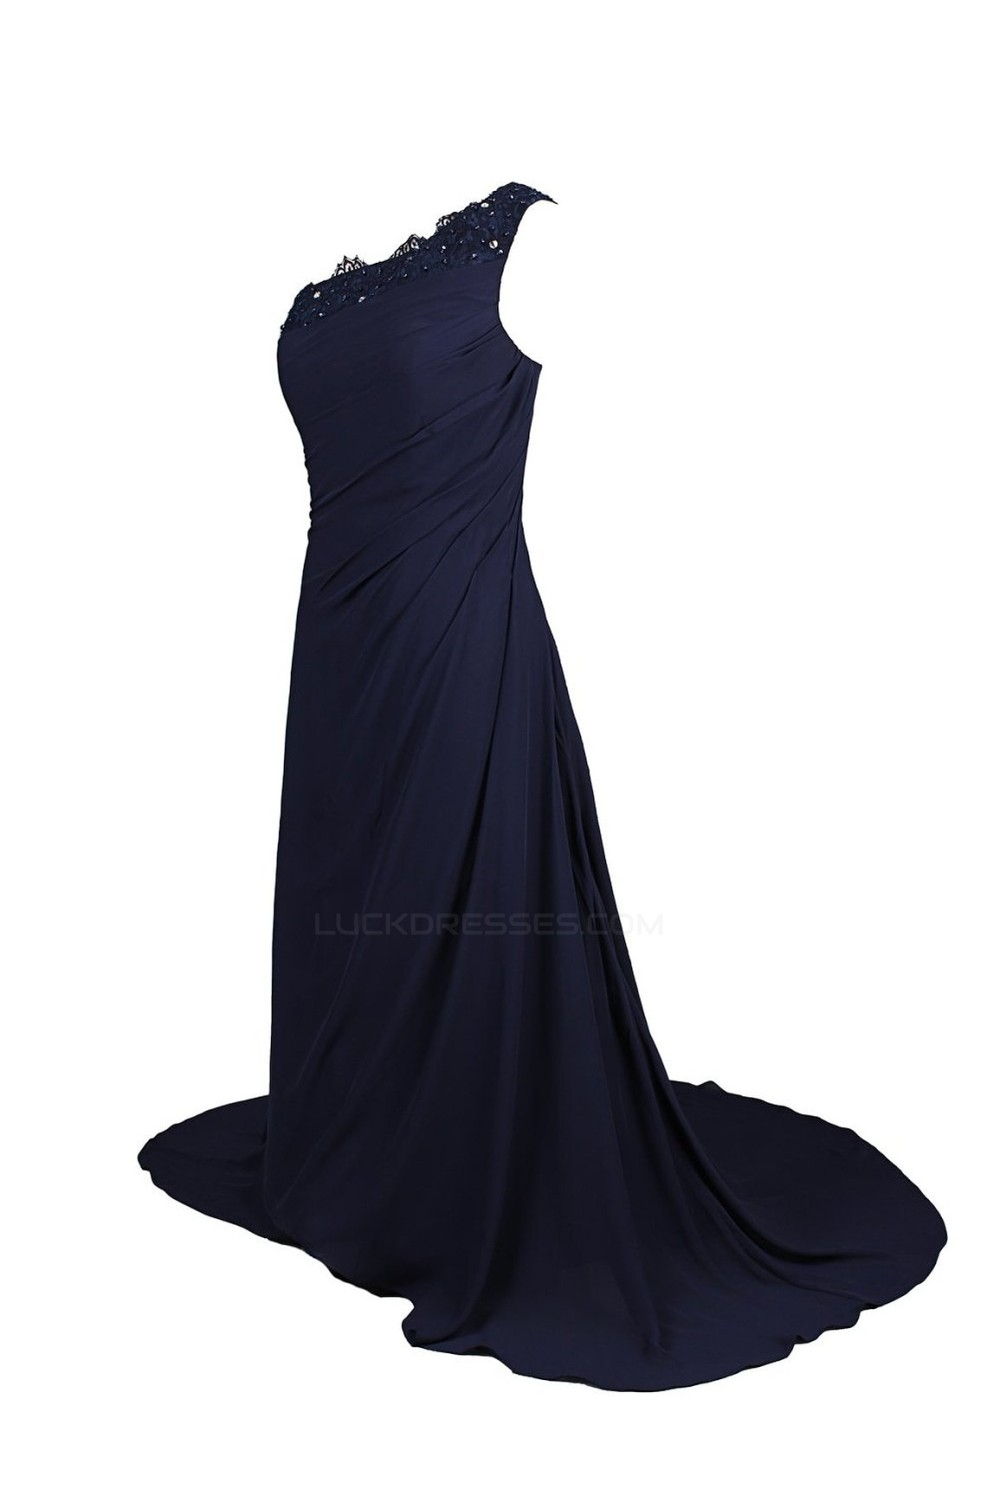 699b1266ef78 One Shoulder Navy Bridesmaid Dress